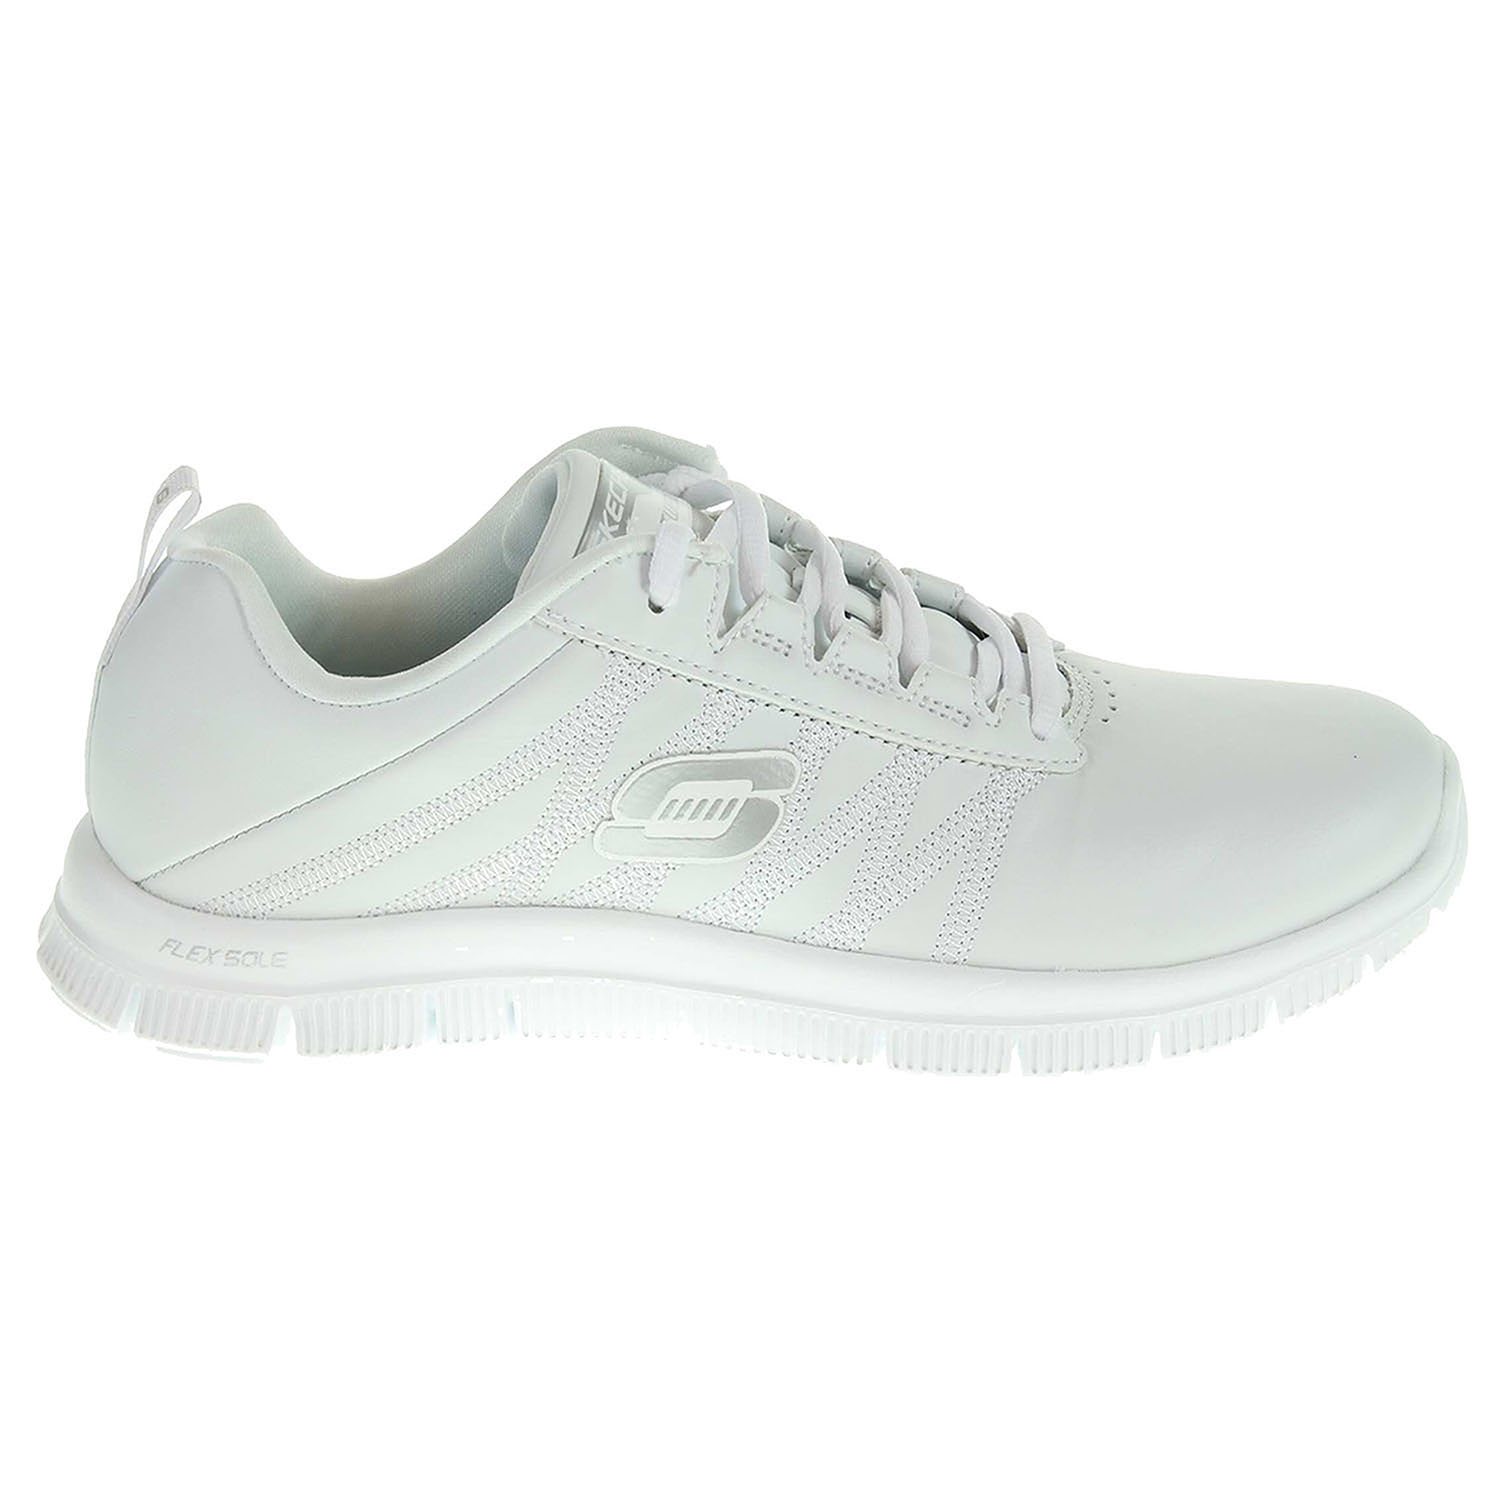 Skechers Pure Tone white 36